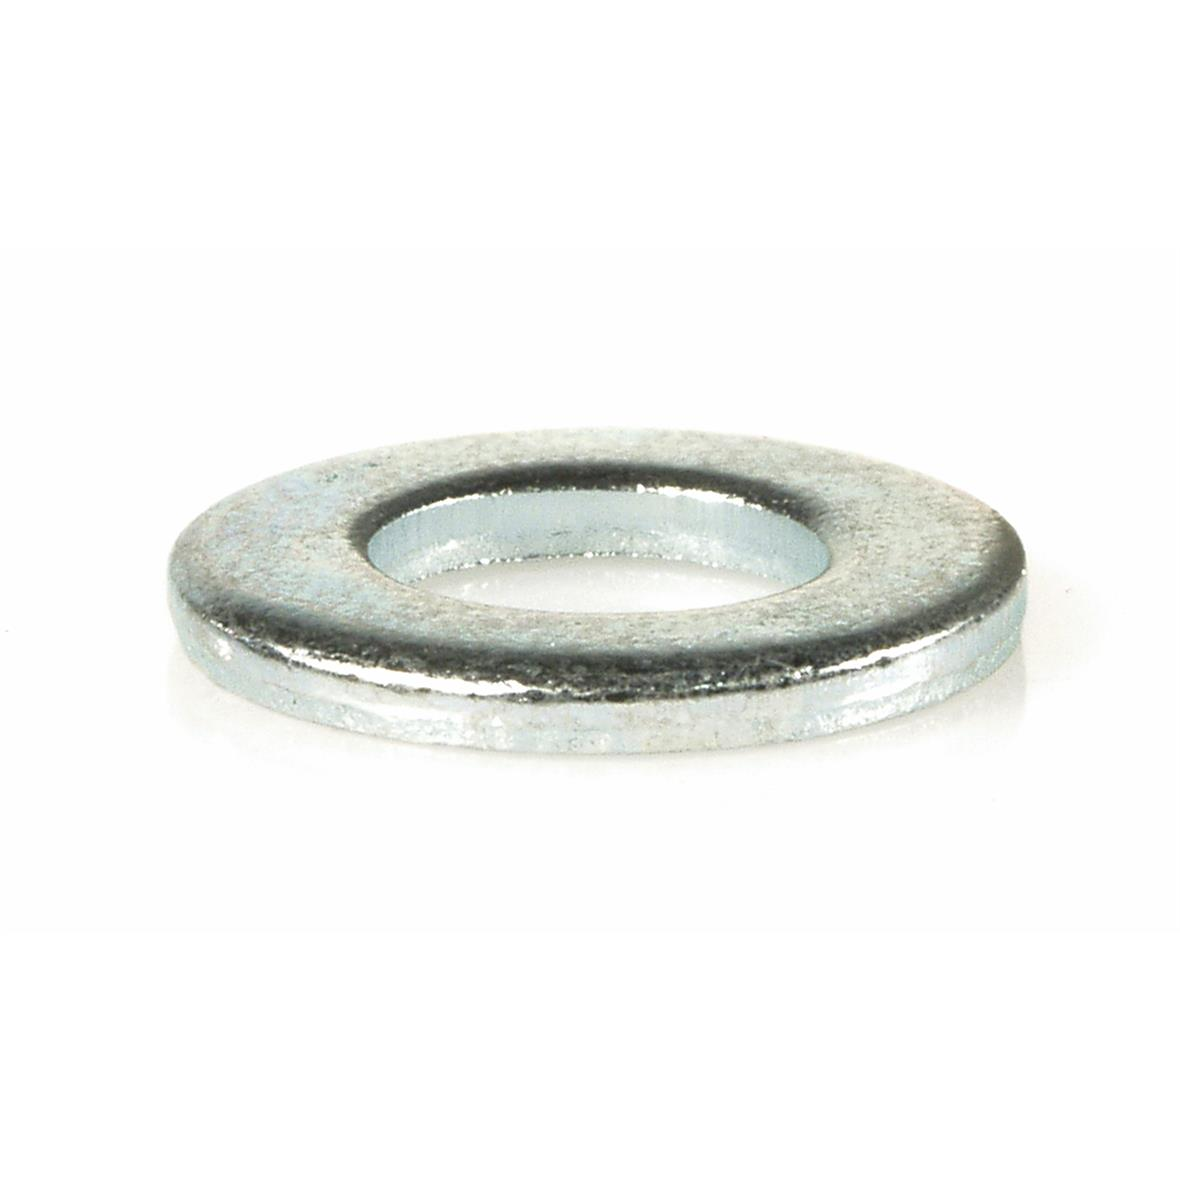 Product Image for 'Washer M8 mm Ø 8,4x16 mm (th) 1,6mmTitle'